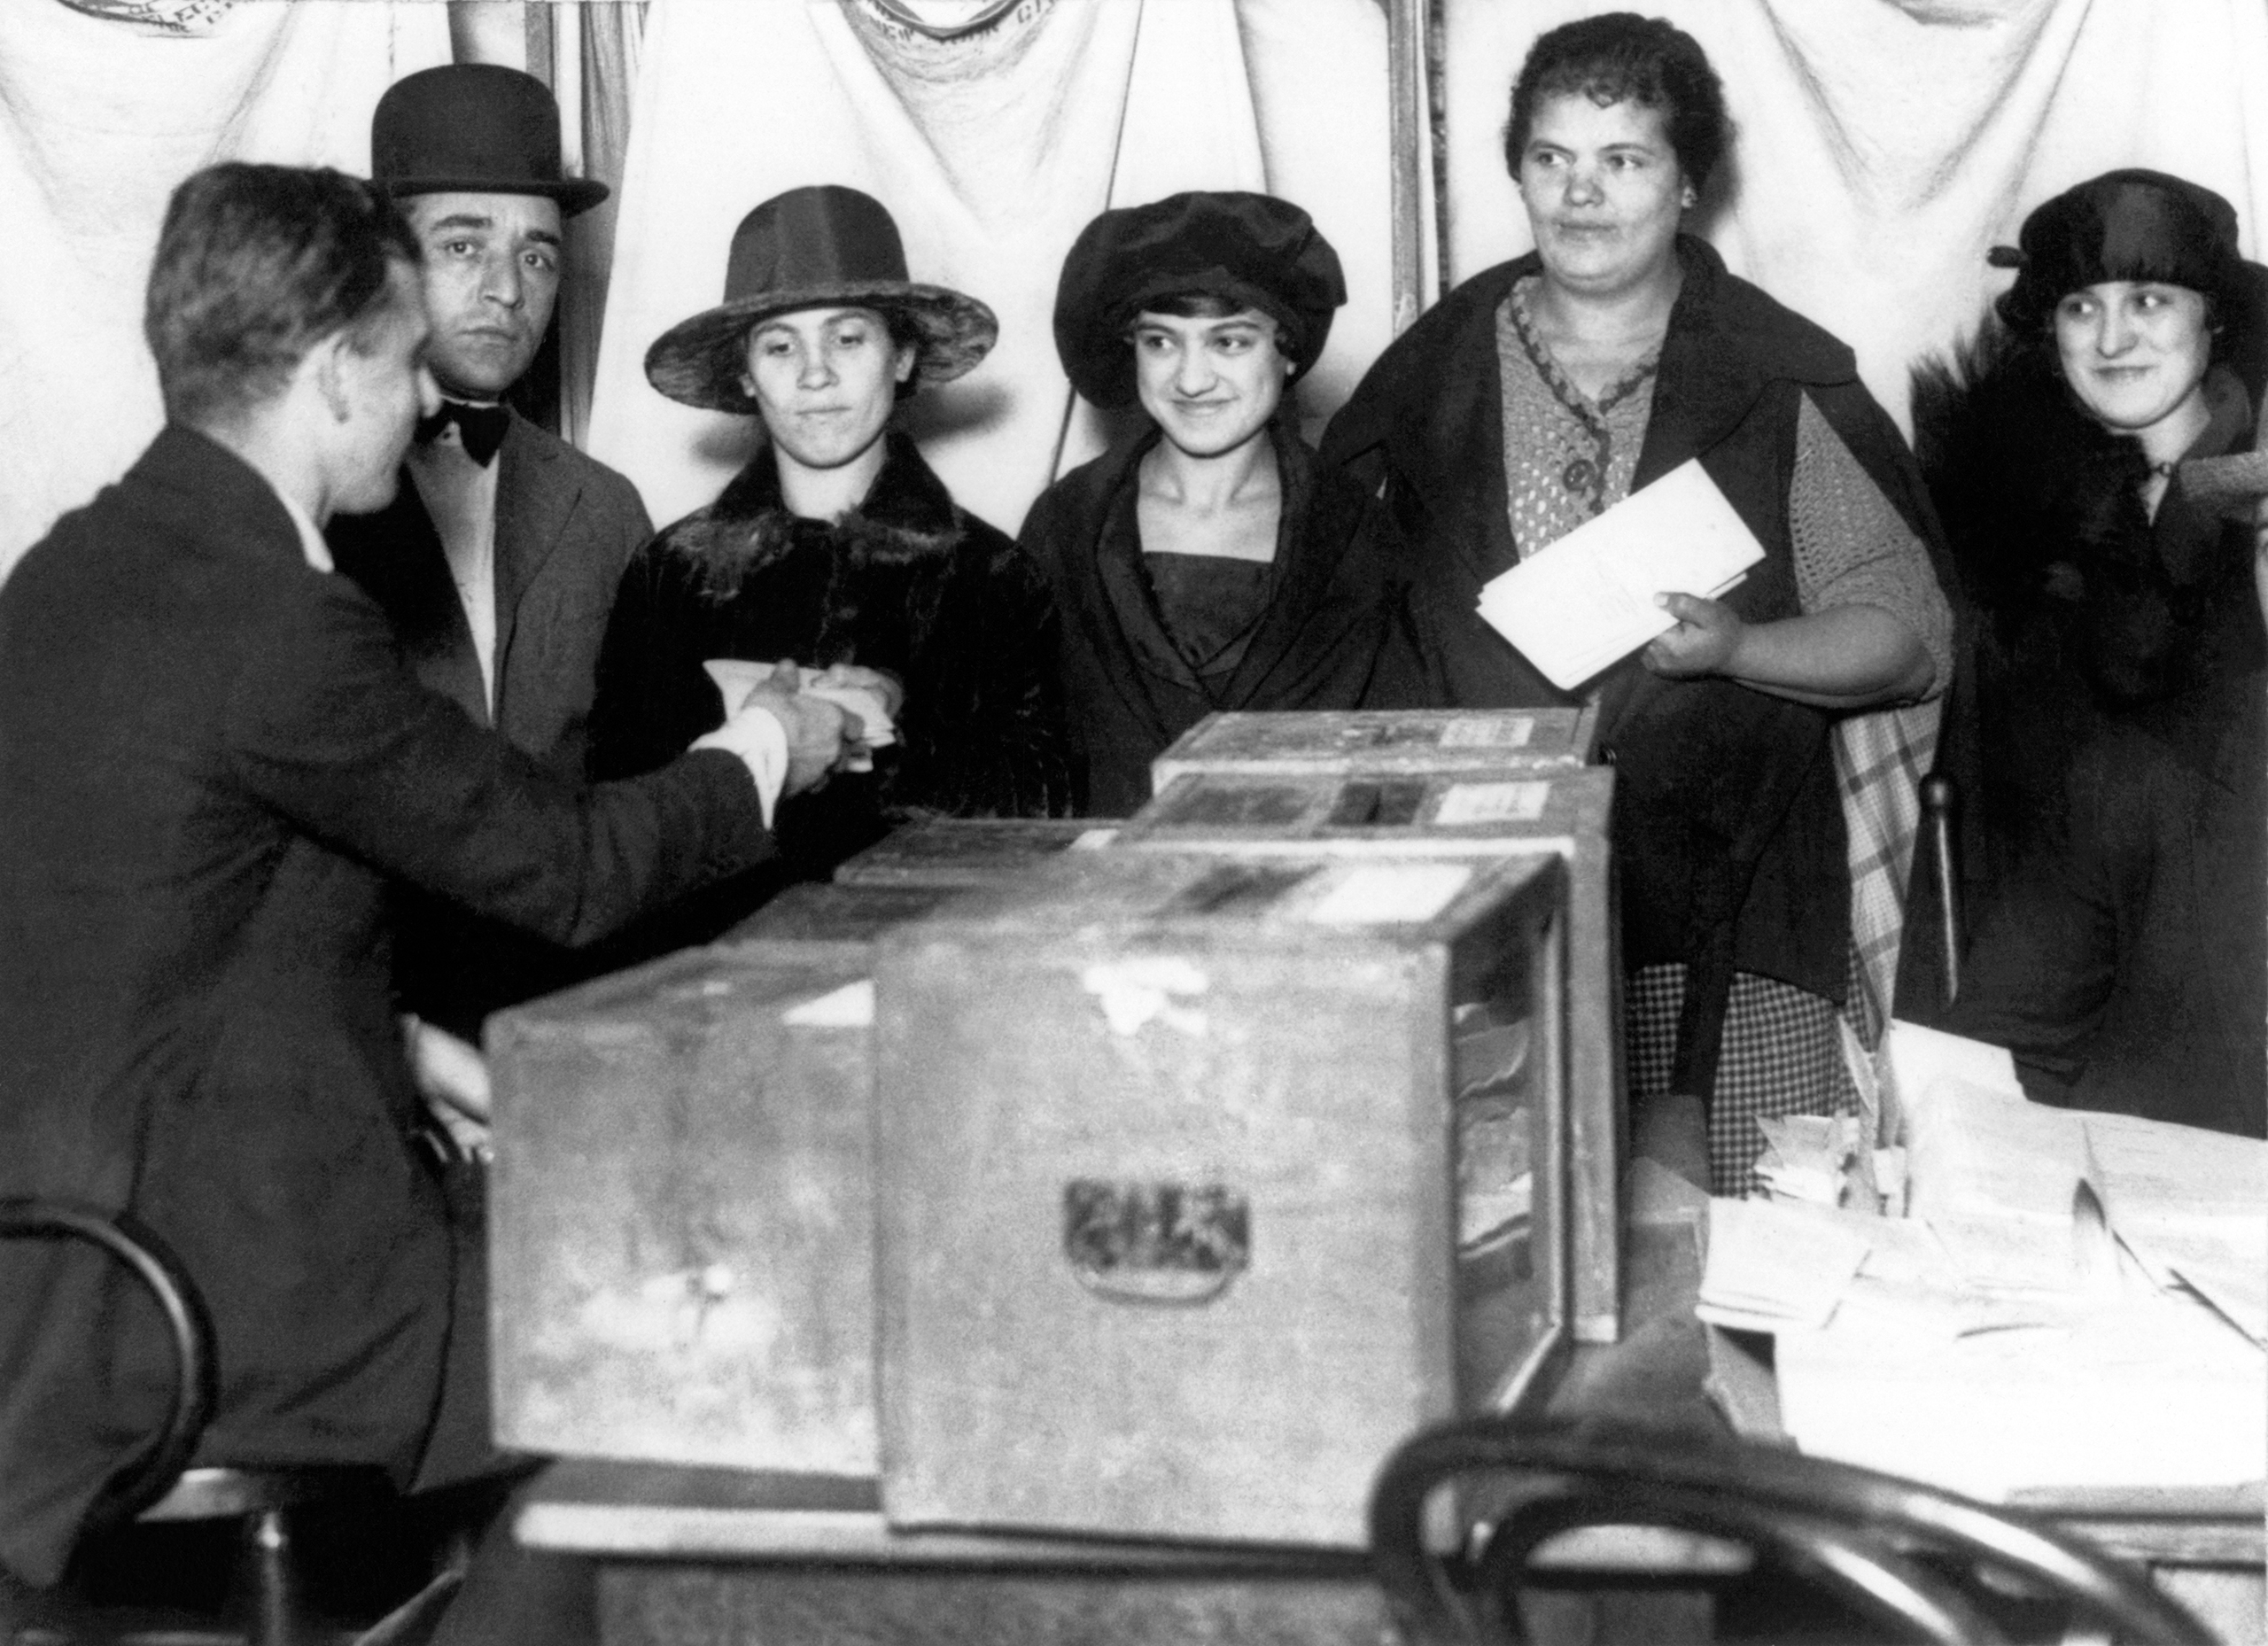 Women line up to vote for the first time in New York after the passage of the 19th Amendment, in 1920.